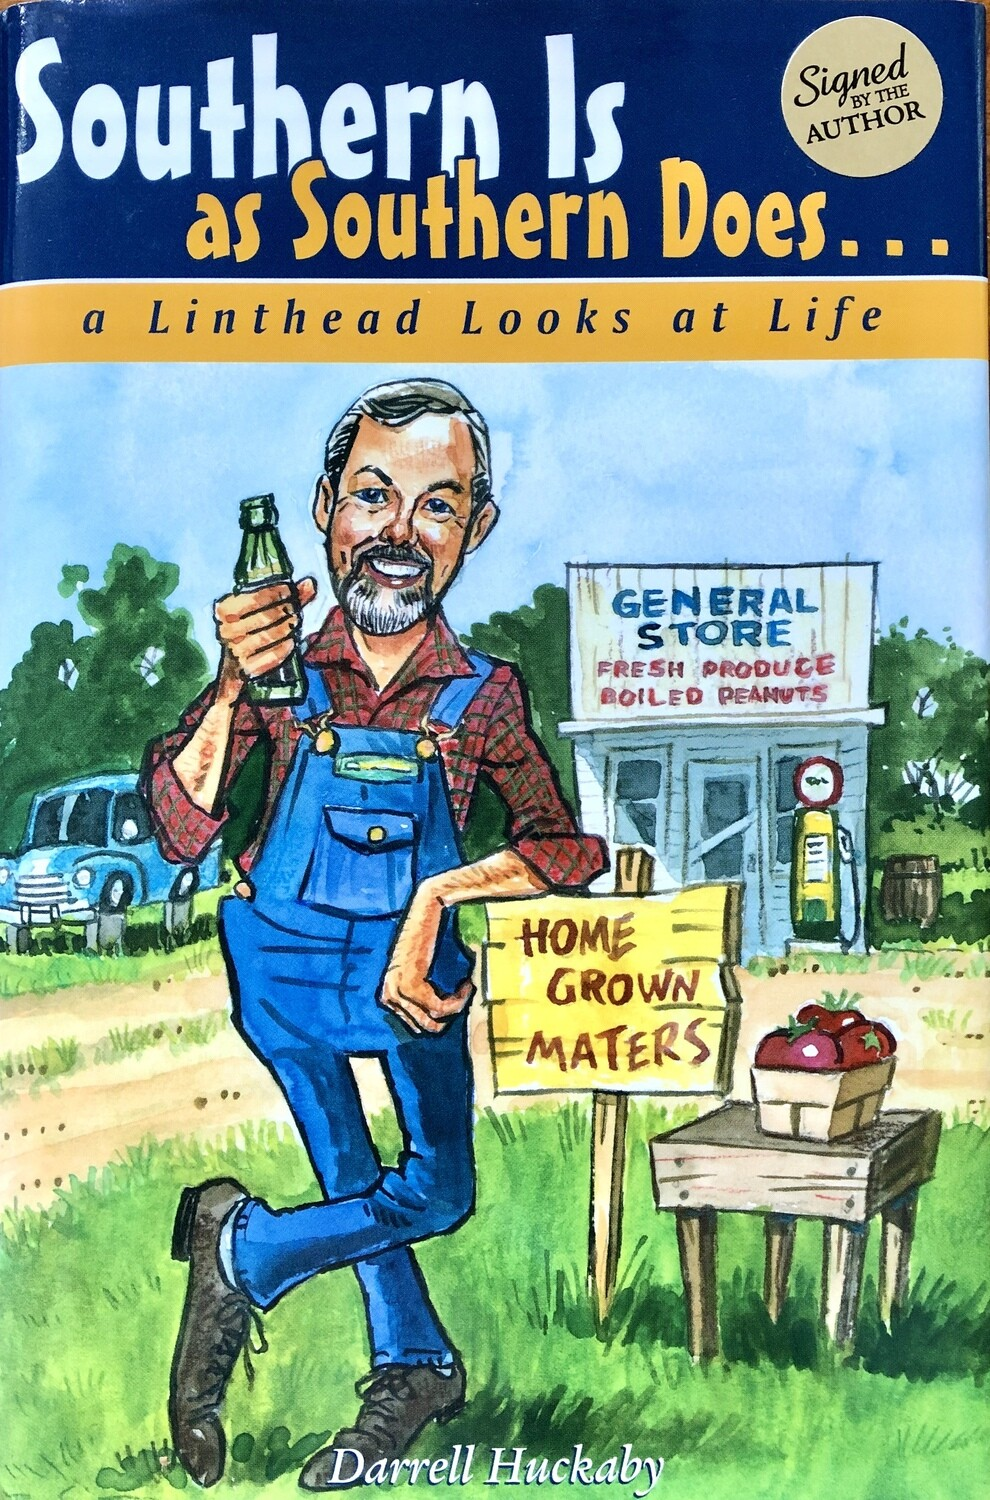 Southern Is as Southern Does: A Linthead Looks at Life by Darrell Huckaby